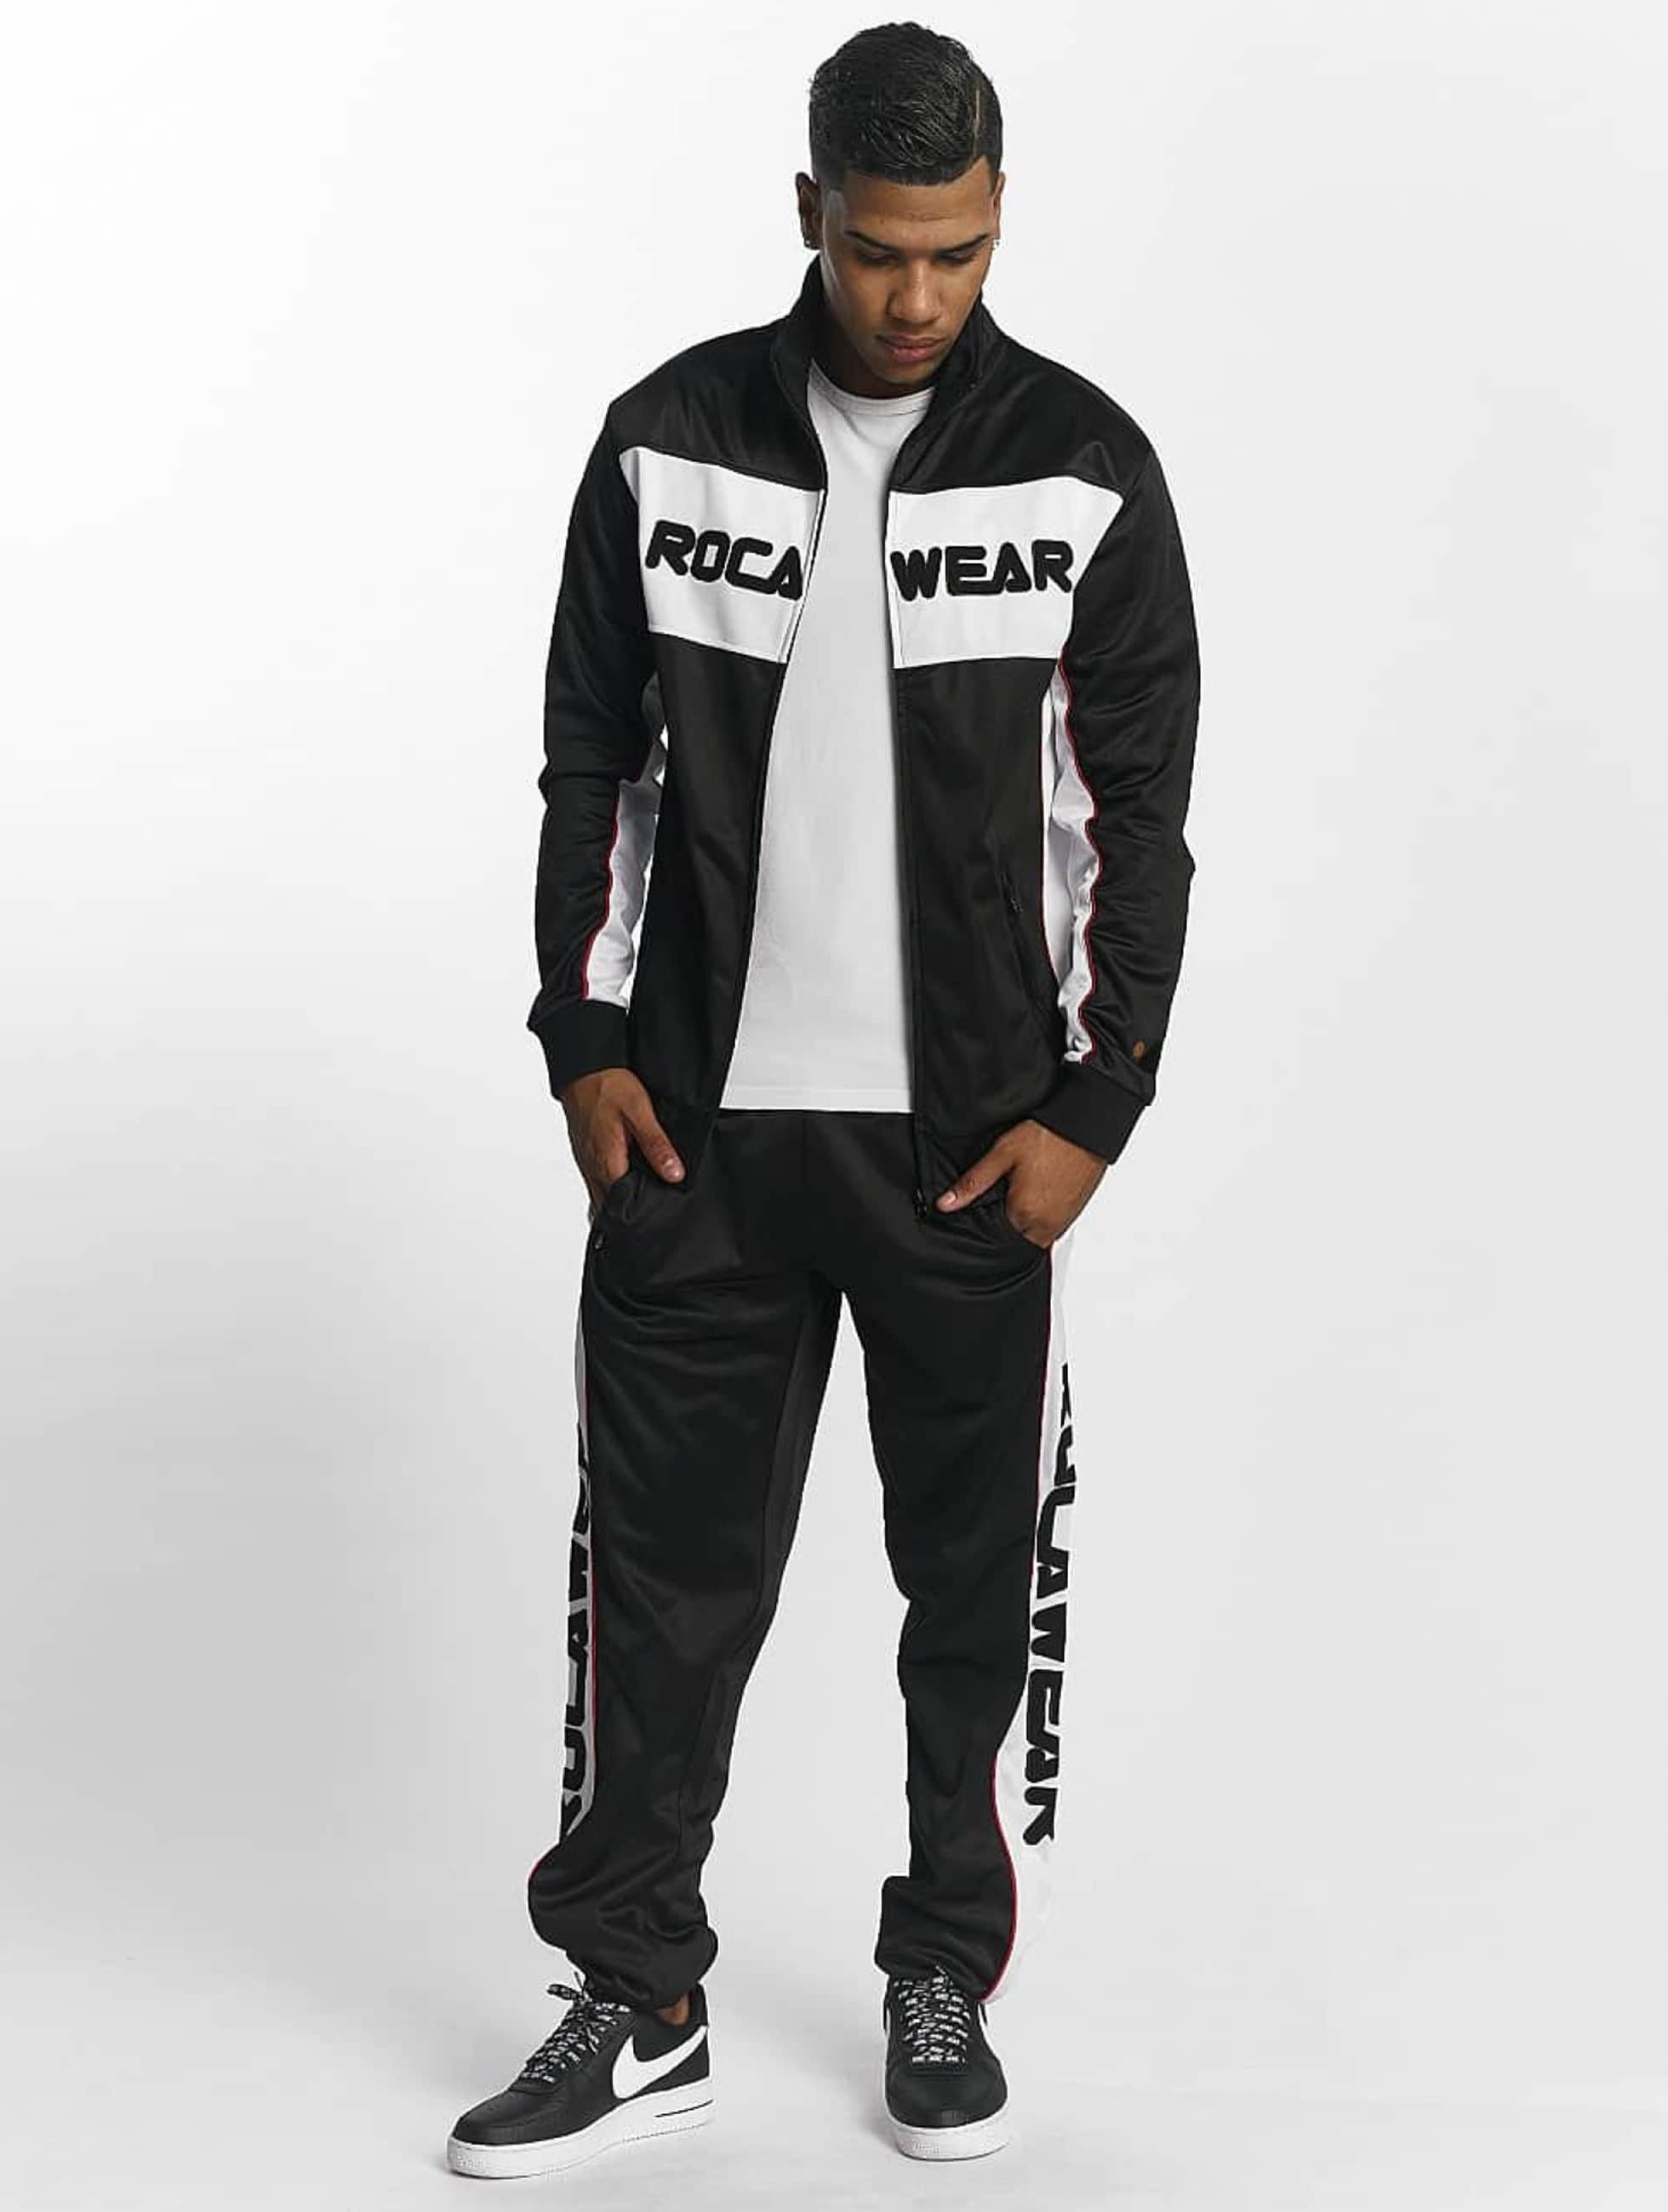 Rocawear / Suits Sports in black S